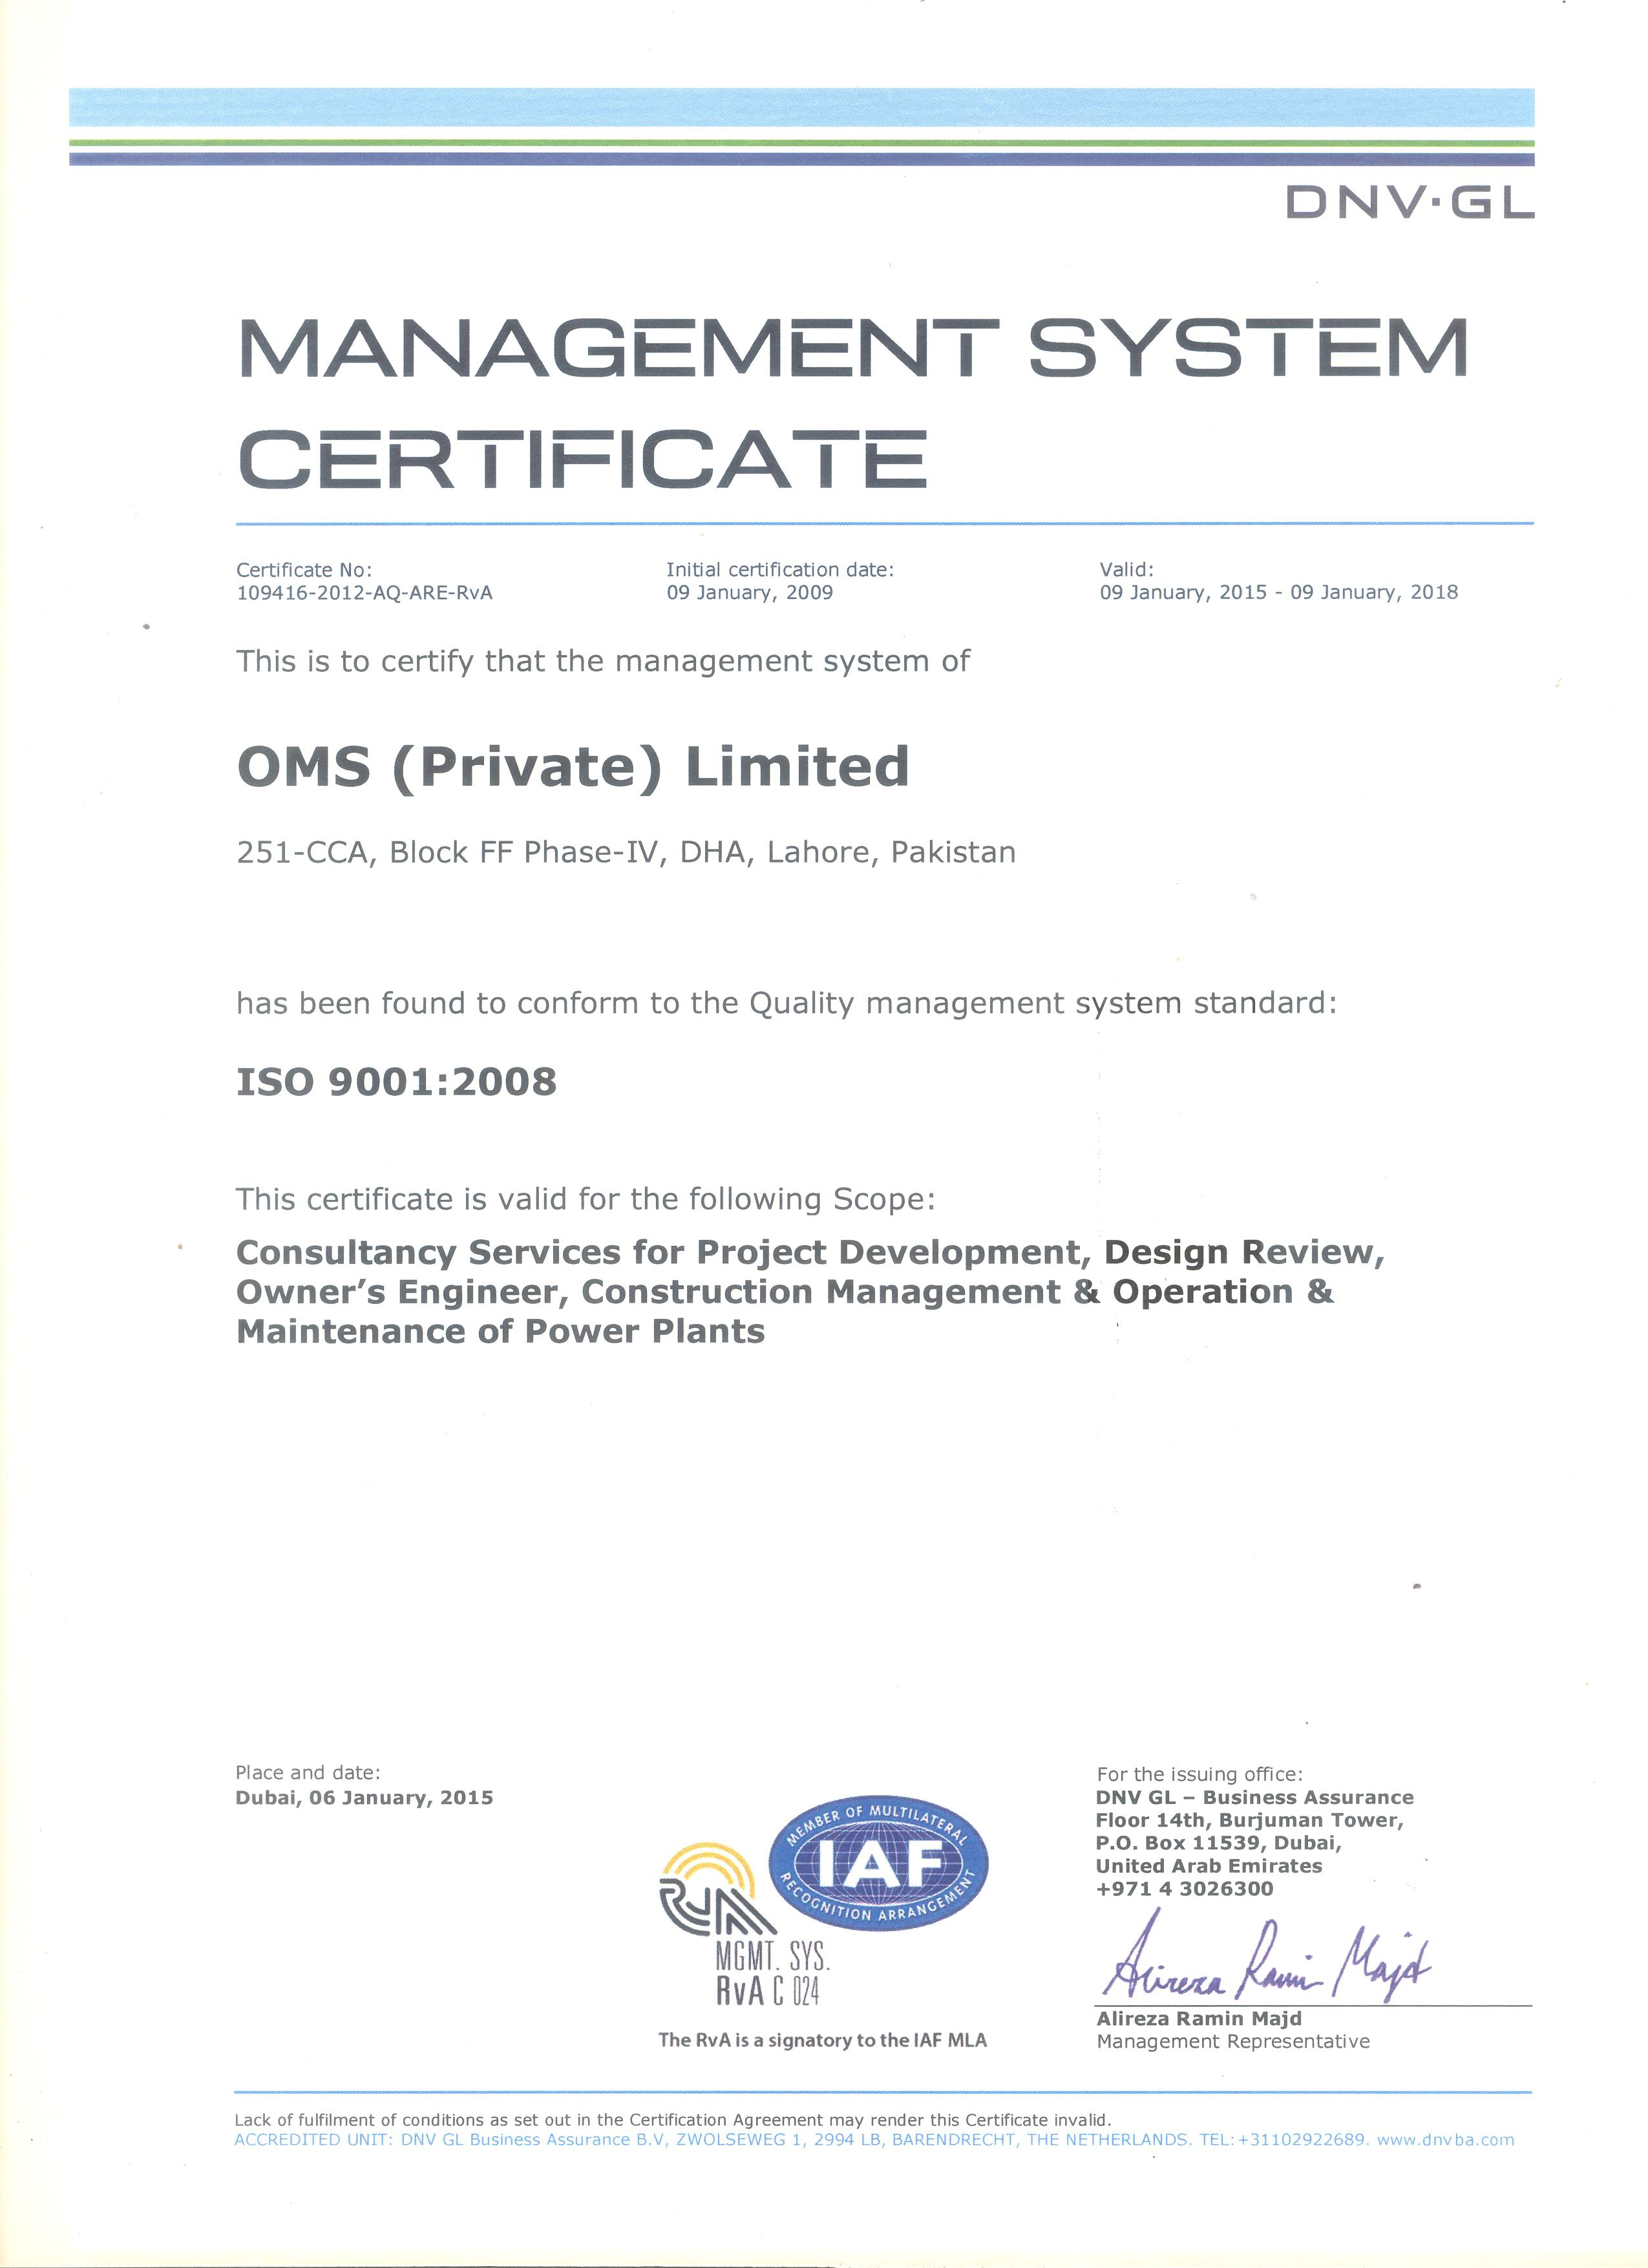 ISO-9001 image